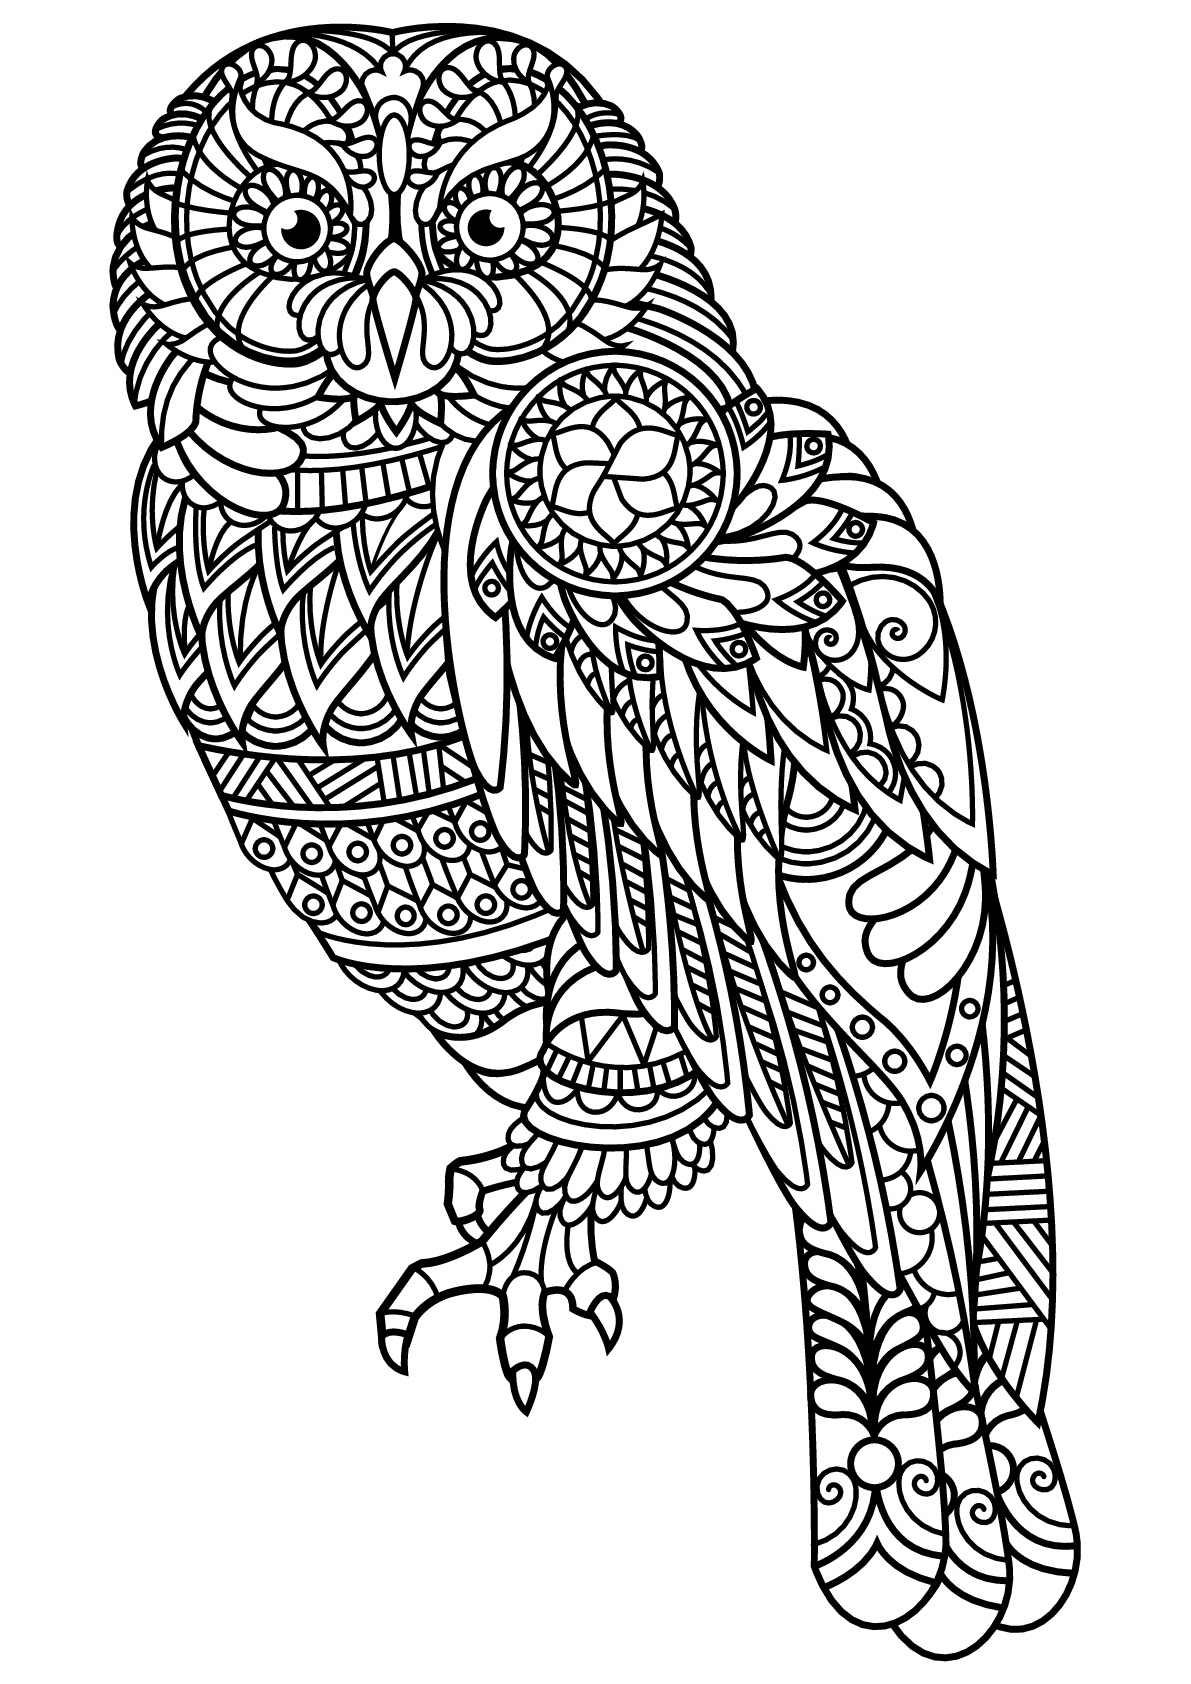 coloring pictures of animals african animals coloring page free printable coloring pages animals coloring pictures of